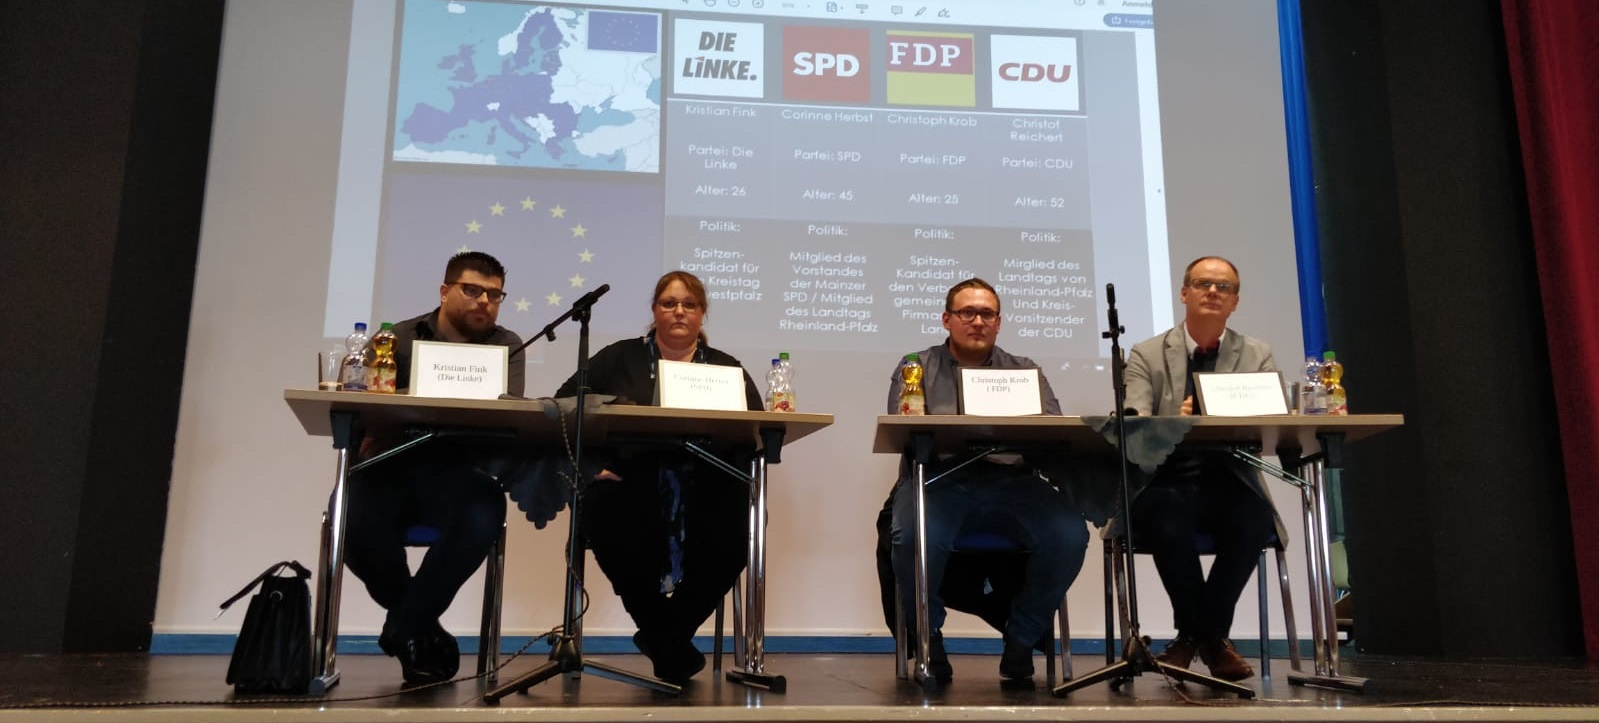 Podiumsdiskussion 2019 Europawahl